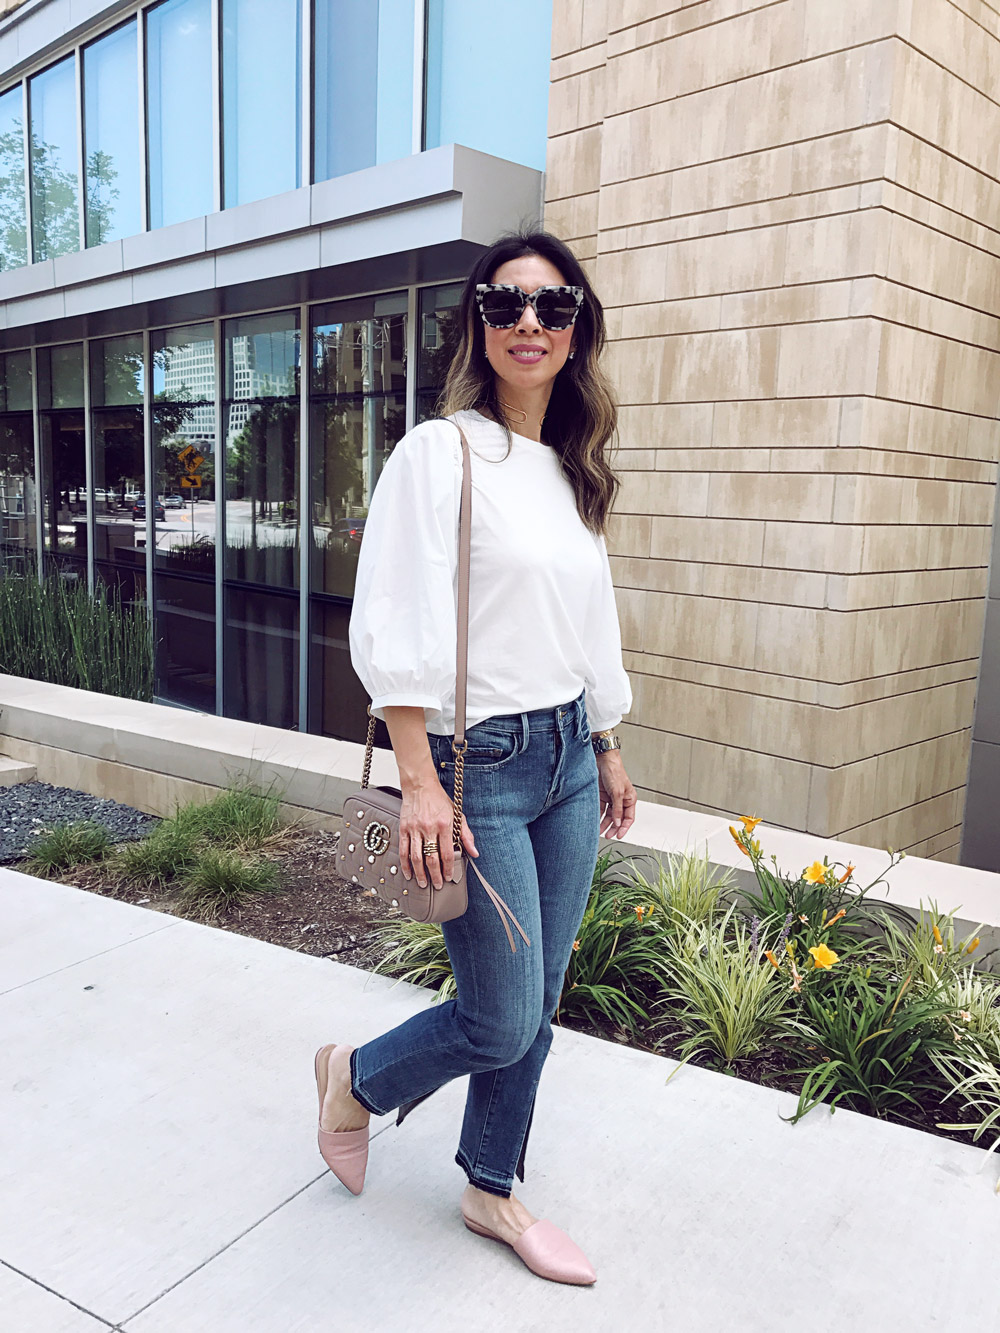 topshop balloon sleeve top frame front split hem jeans everlane pointed slides sonix avalon sunglasses gucci pearl marmont bag nordstrom anniversary sale picks 2017